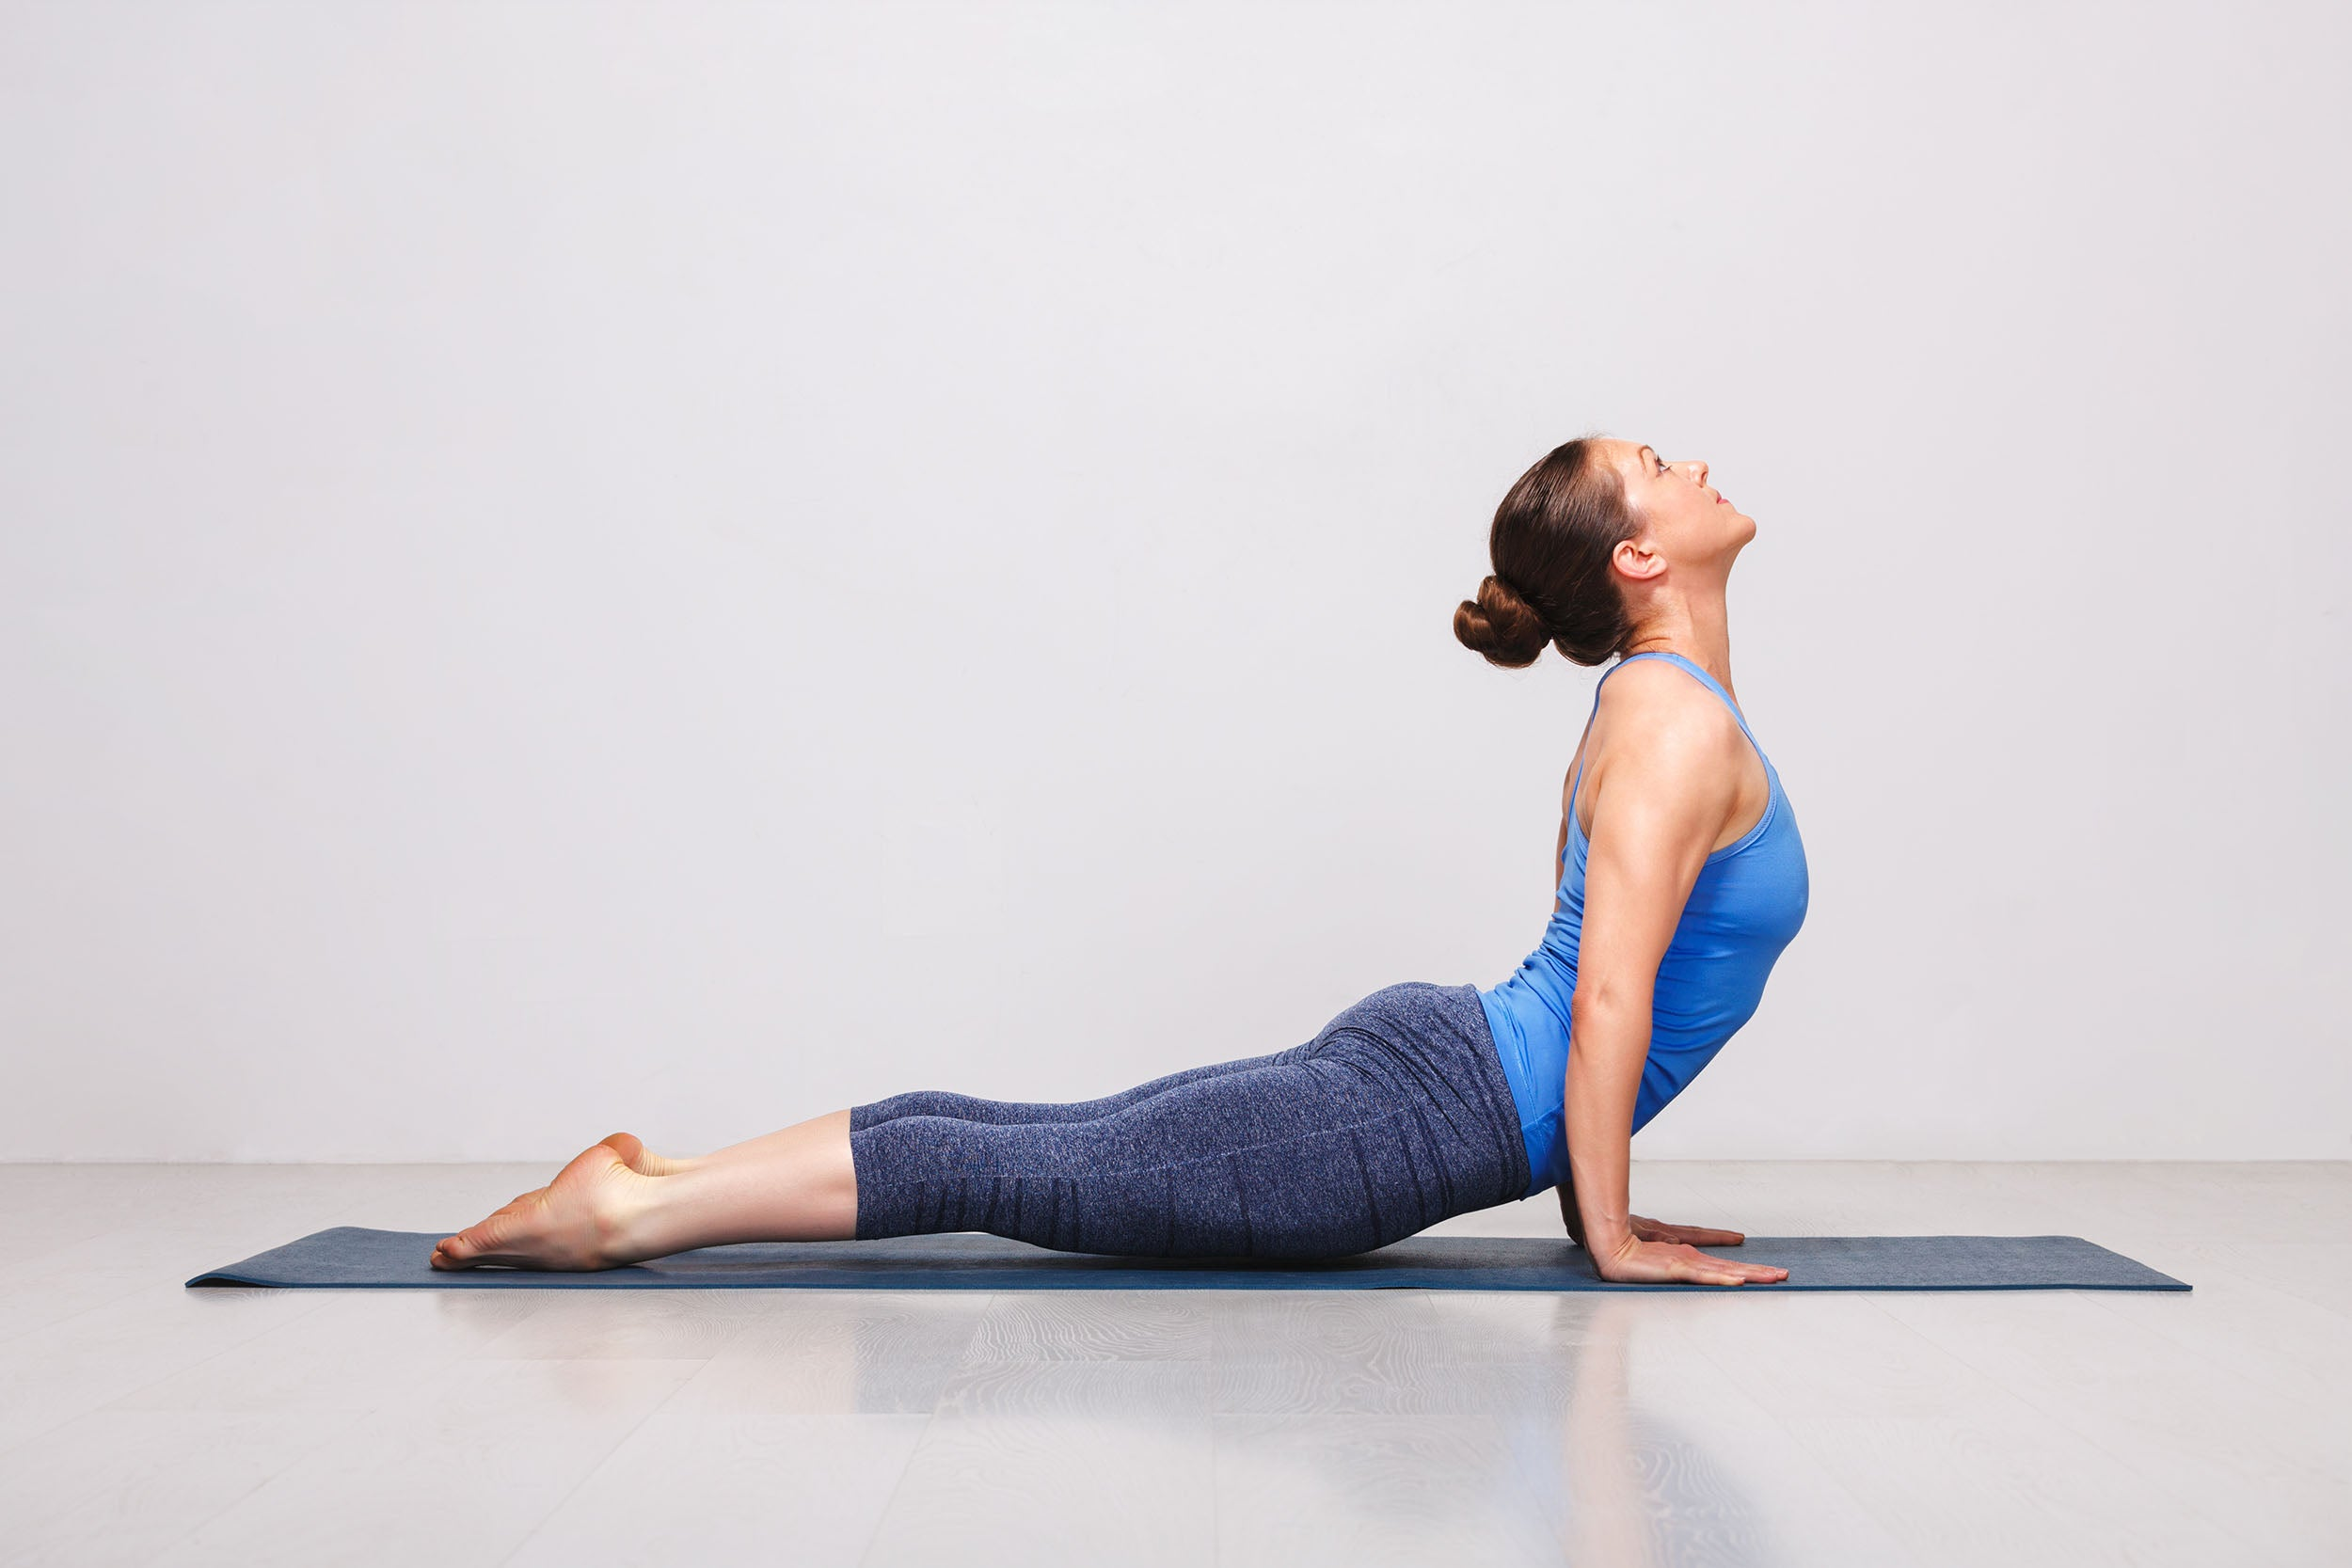 Key Poses to Start Your Yoga Practice